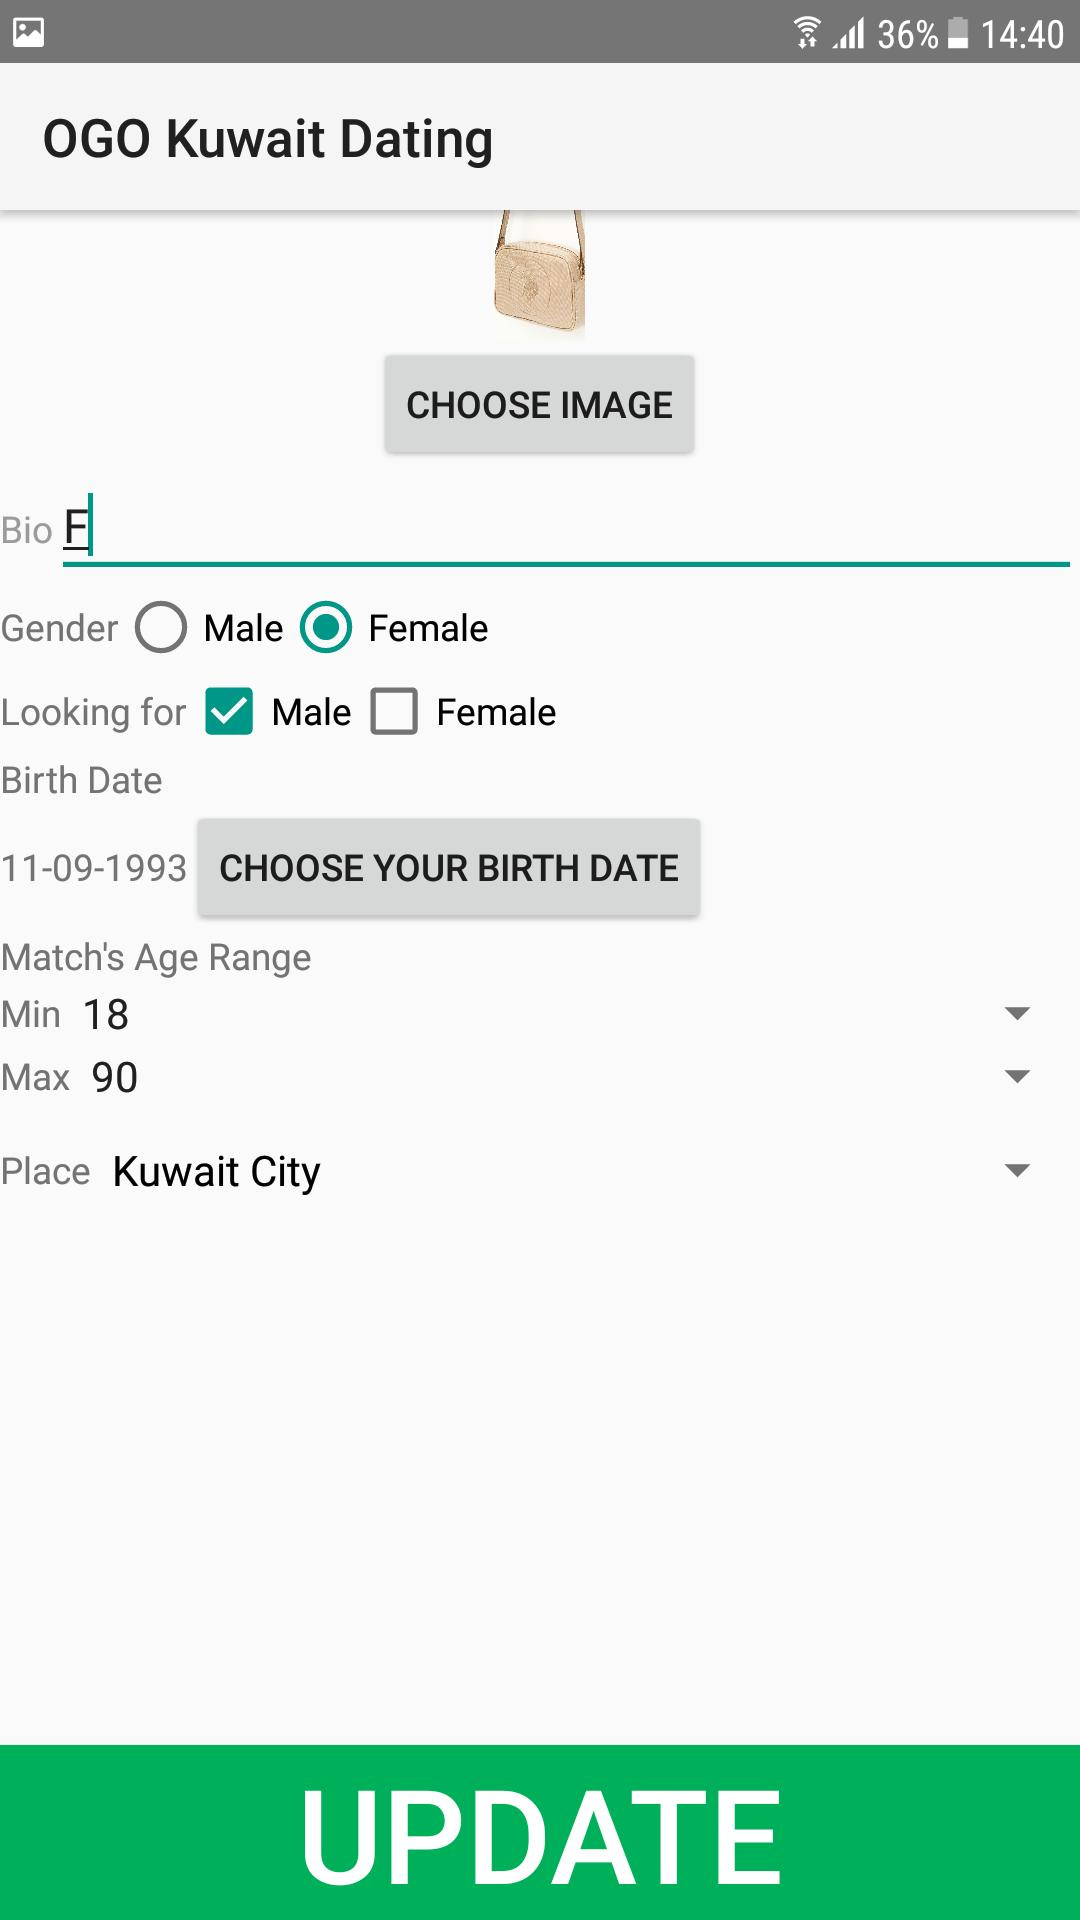 Kuwait Dating Site - OGO for Android - APK Download